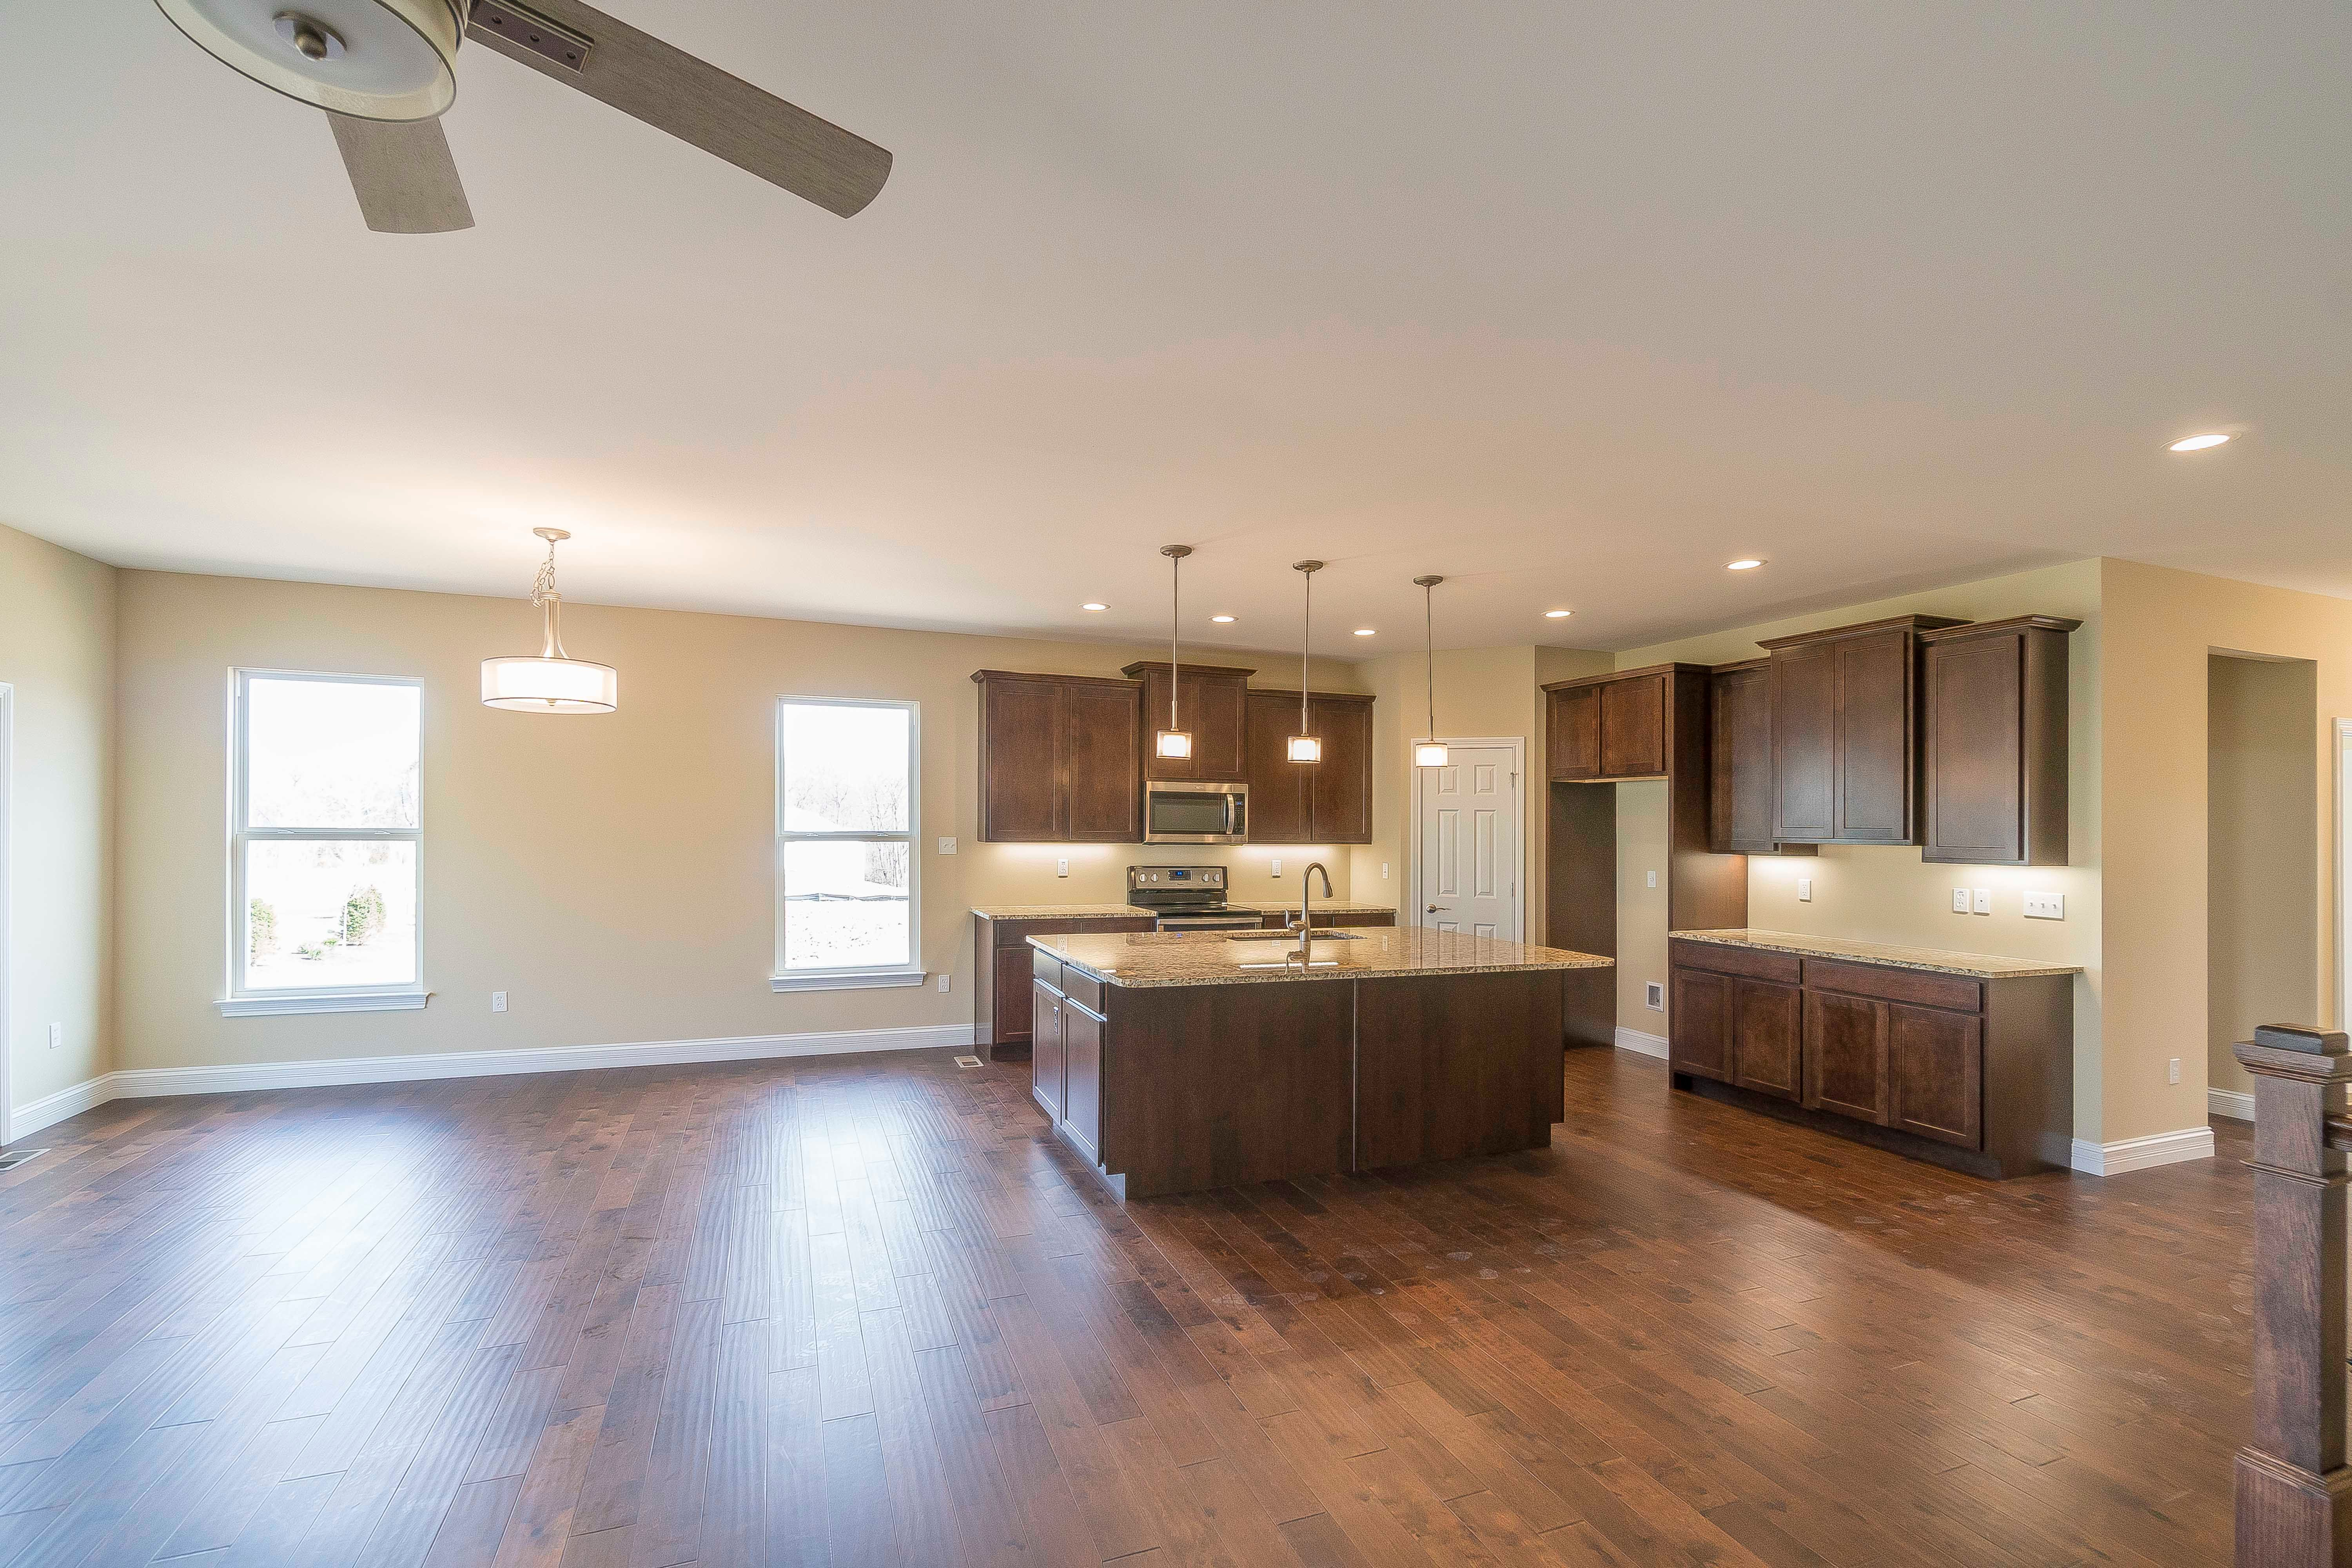 Kitchen featured in the Warson By Bridgewater Communities, Inc. in St. Louis, MO